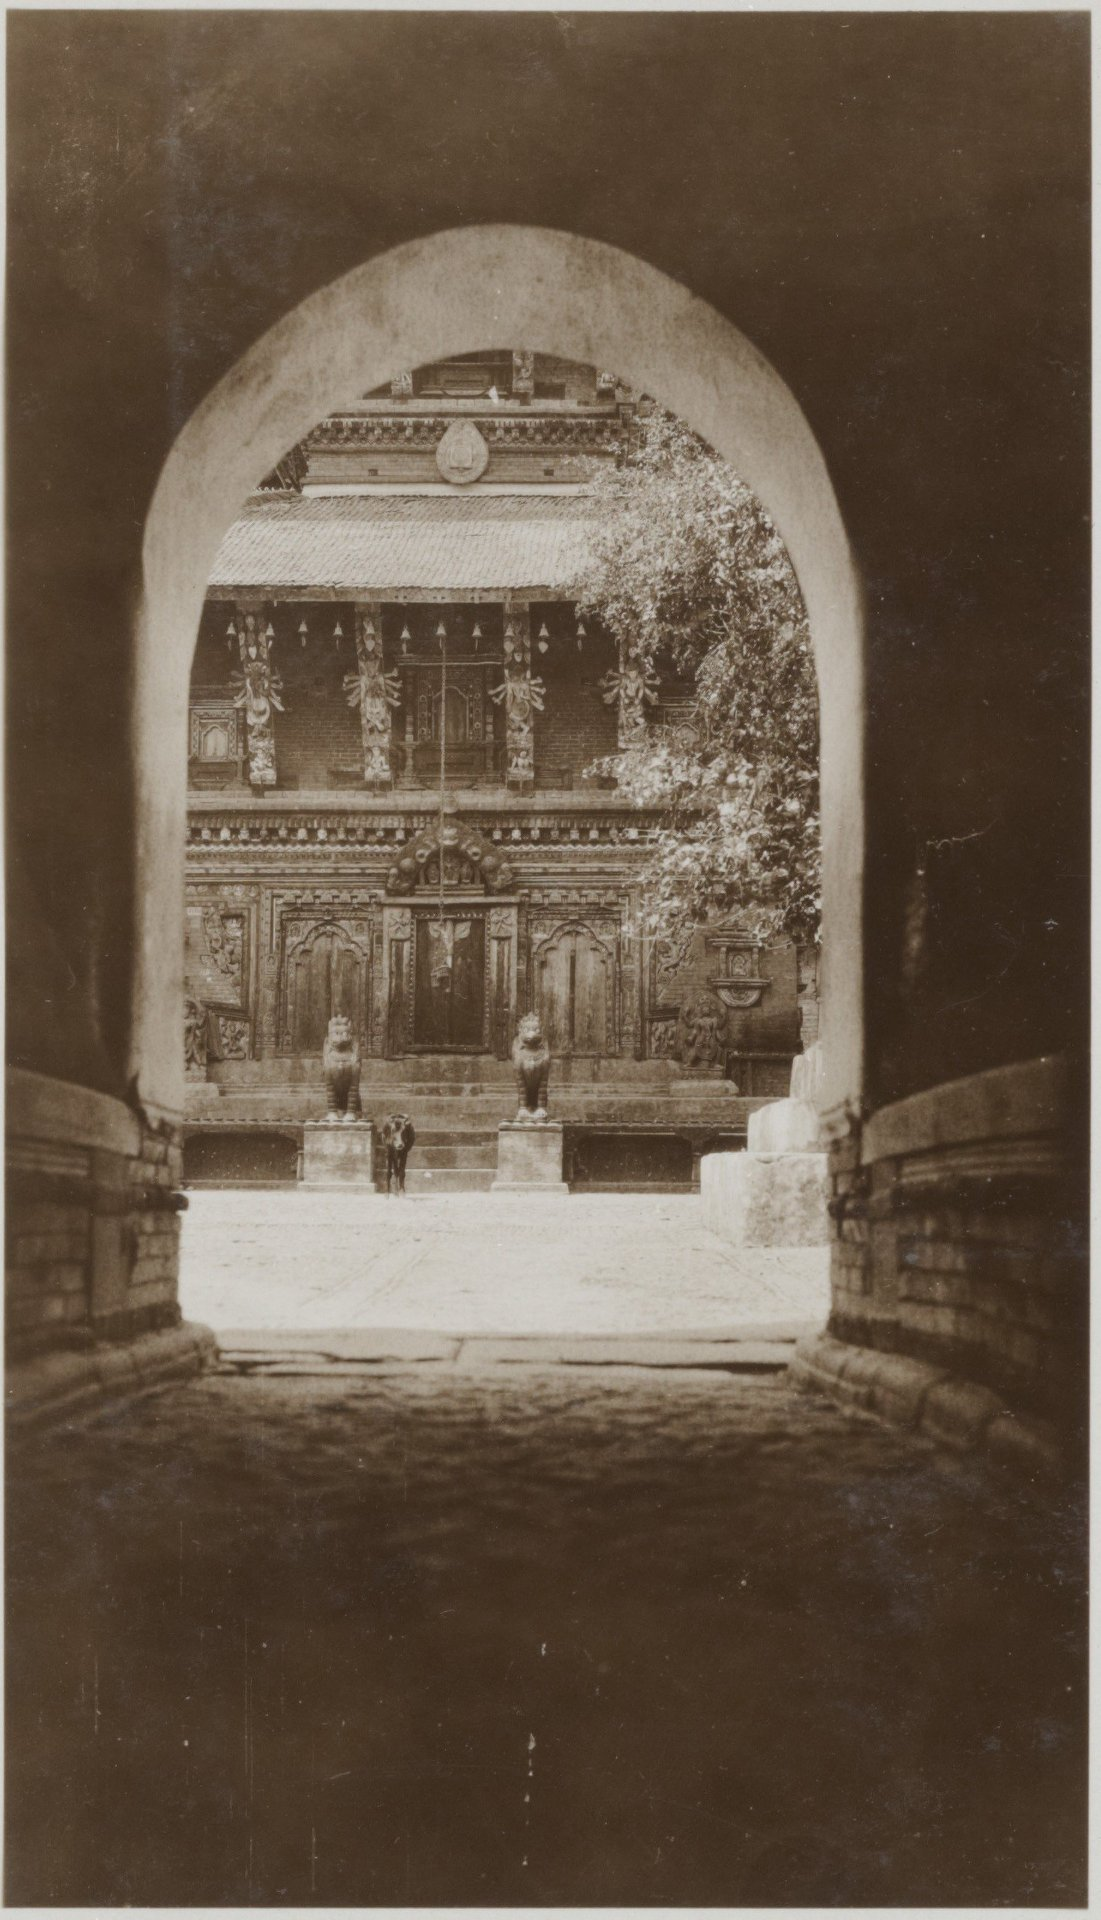 View from Entrance gate (Changu Narayan Temple) 1932-34 image